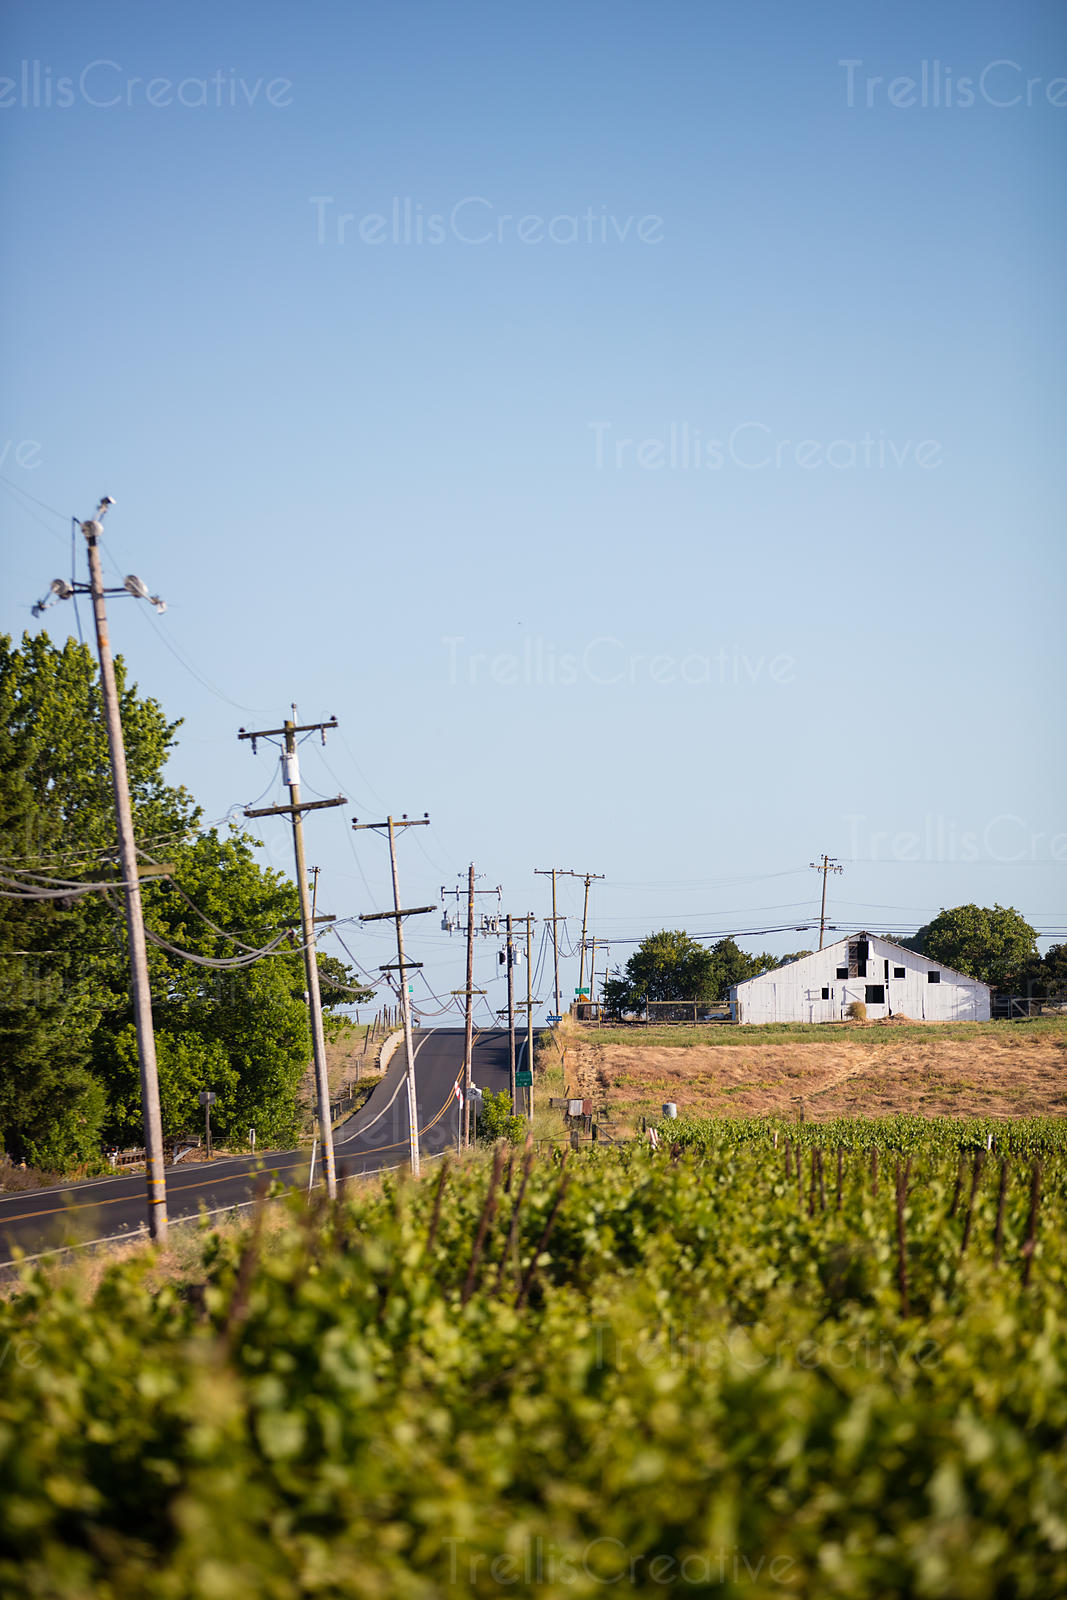 Highway through wine country, Carneros, Napa Valley, Napa County, California, USA.